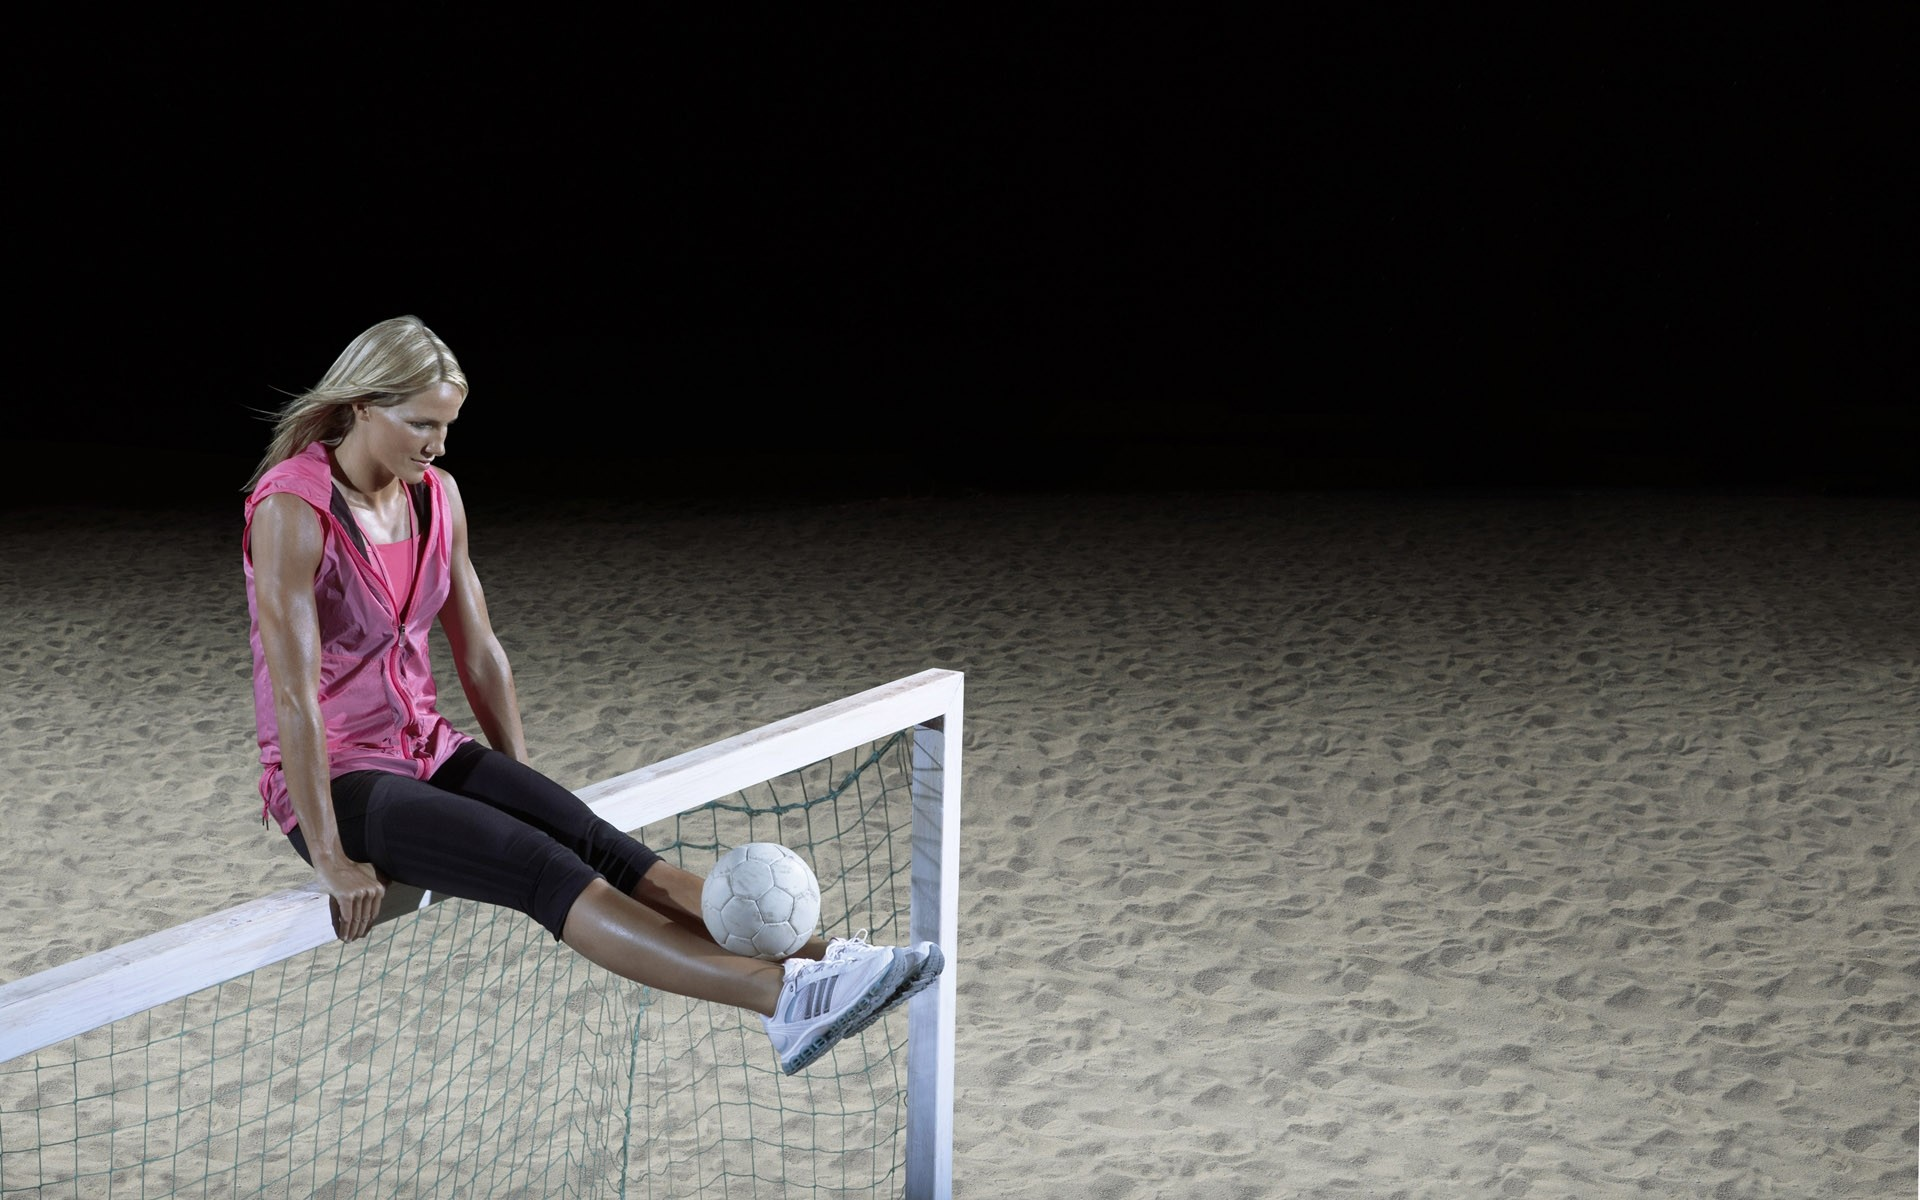 HD Images of Volleyball   1920x1200 download on 1920x1200